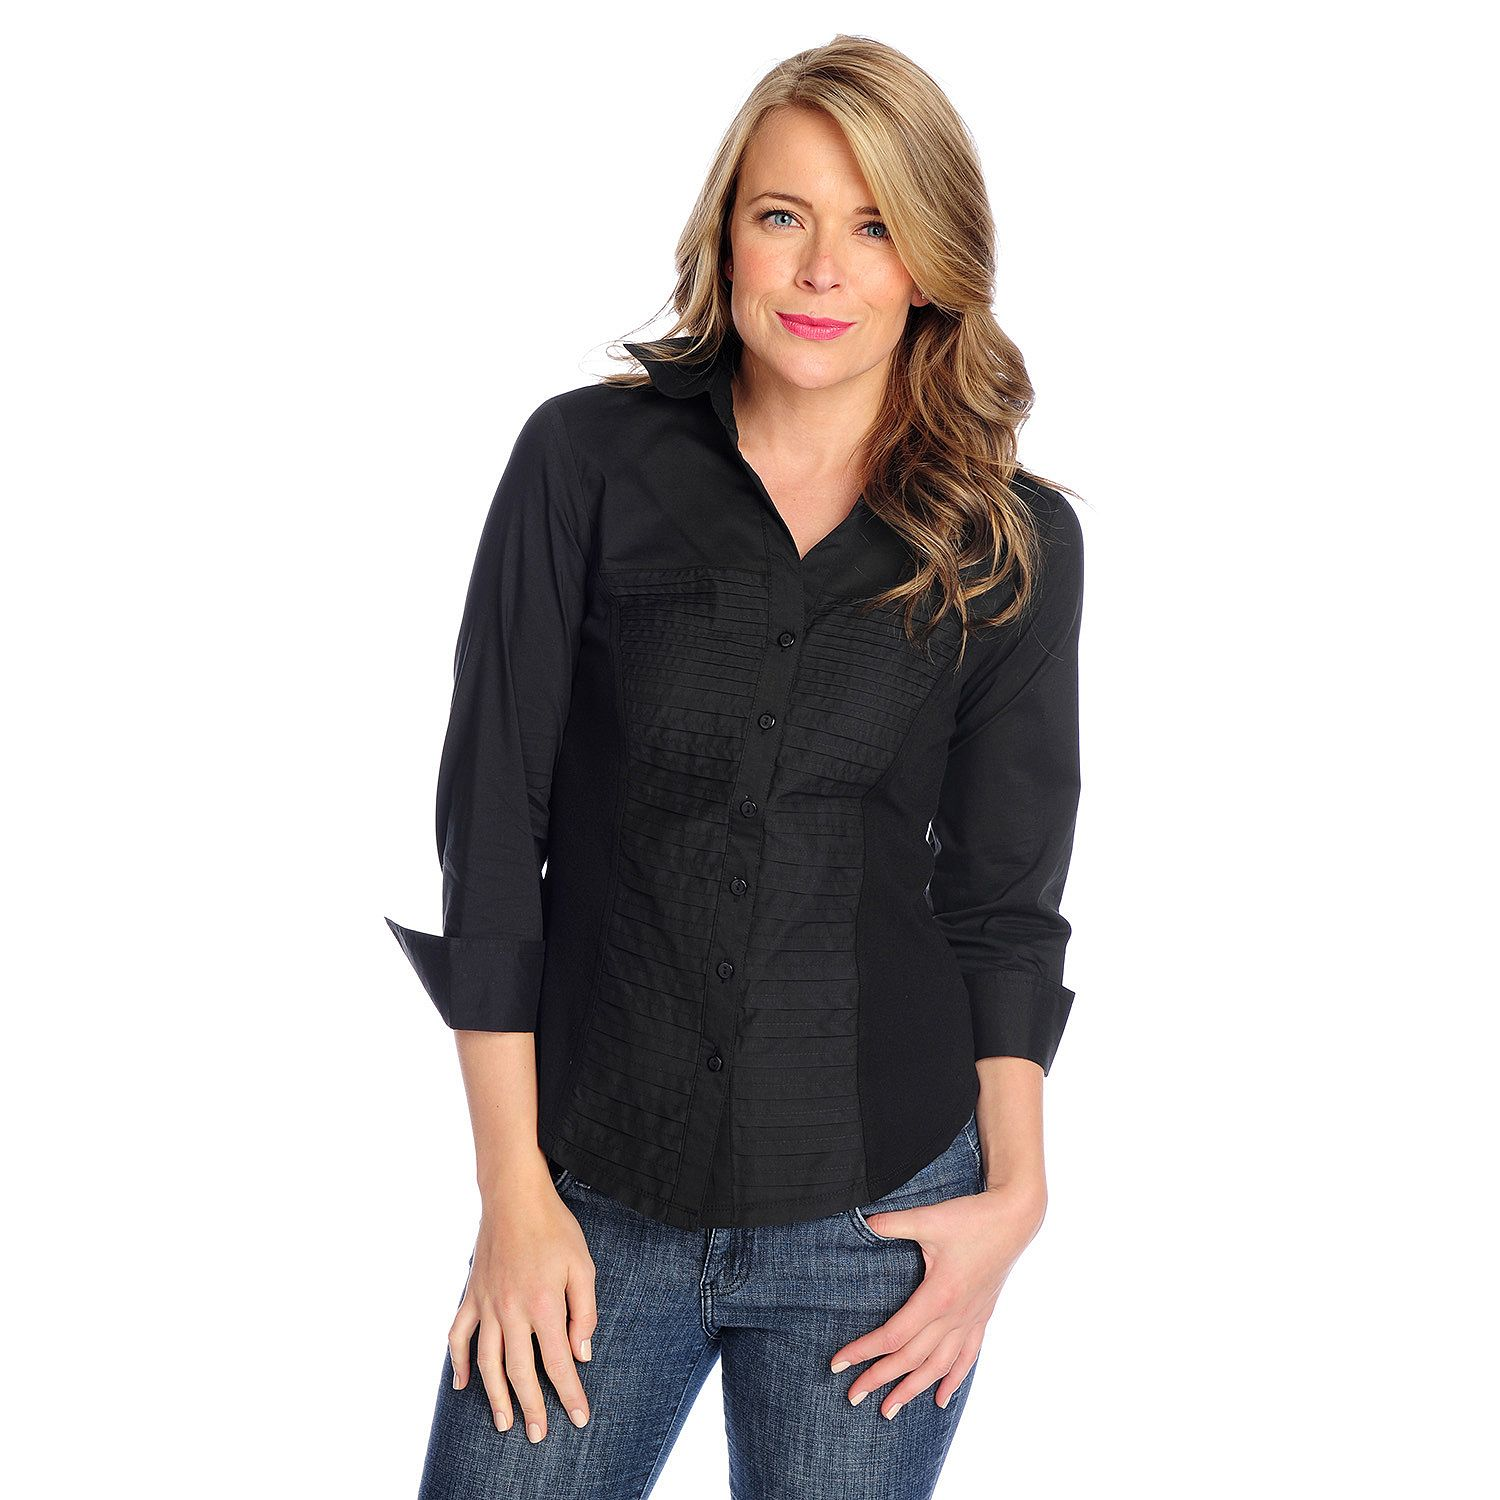 718-967- OSO Casuals® Pleated Woven Knit Side Panel 3/4 Sleeved Button Front Top